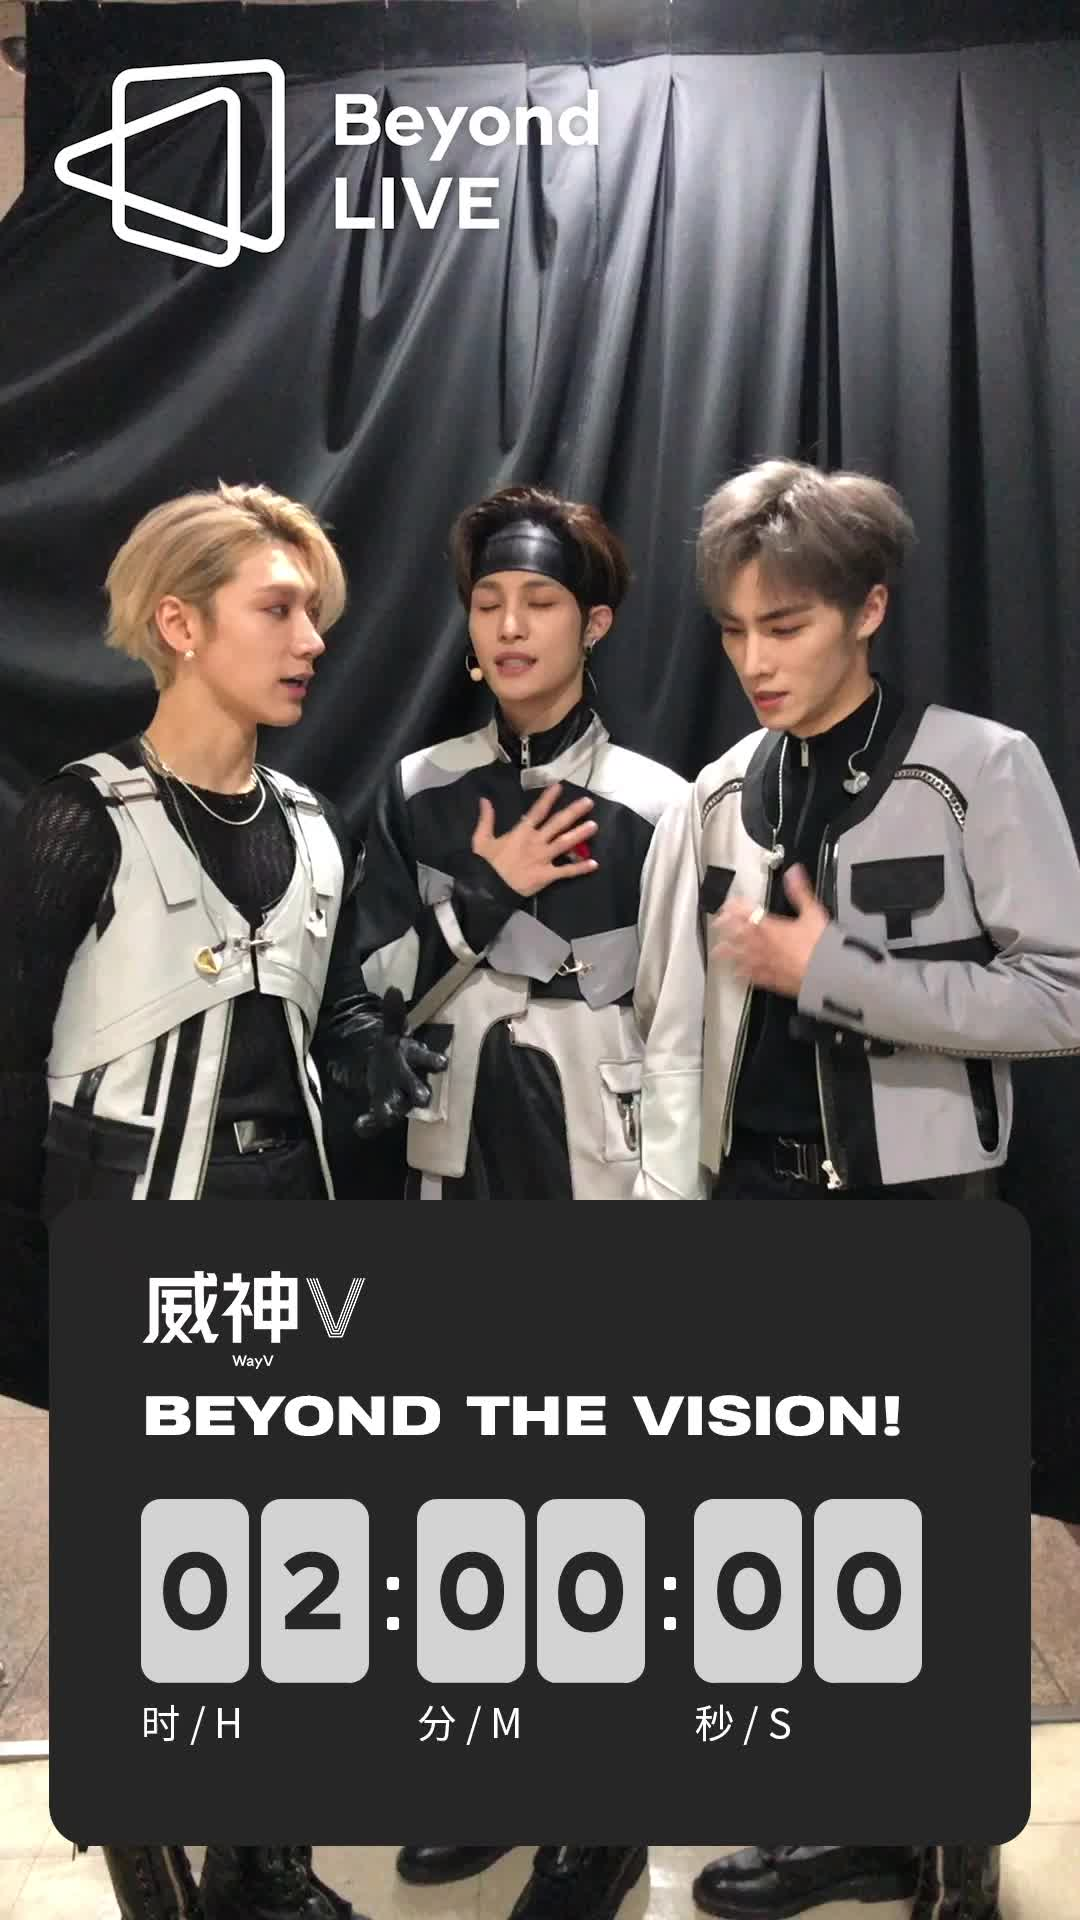 WayV - Beyond the Vision D-DAY🔥THE COUNTDOWN BEGINS : 2 hours to go⏰